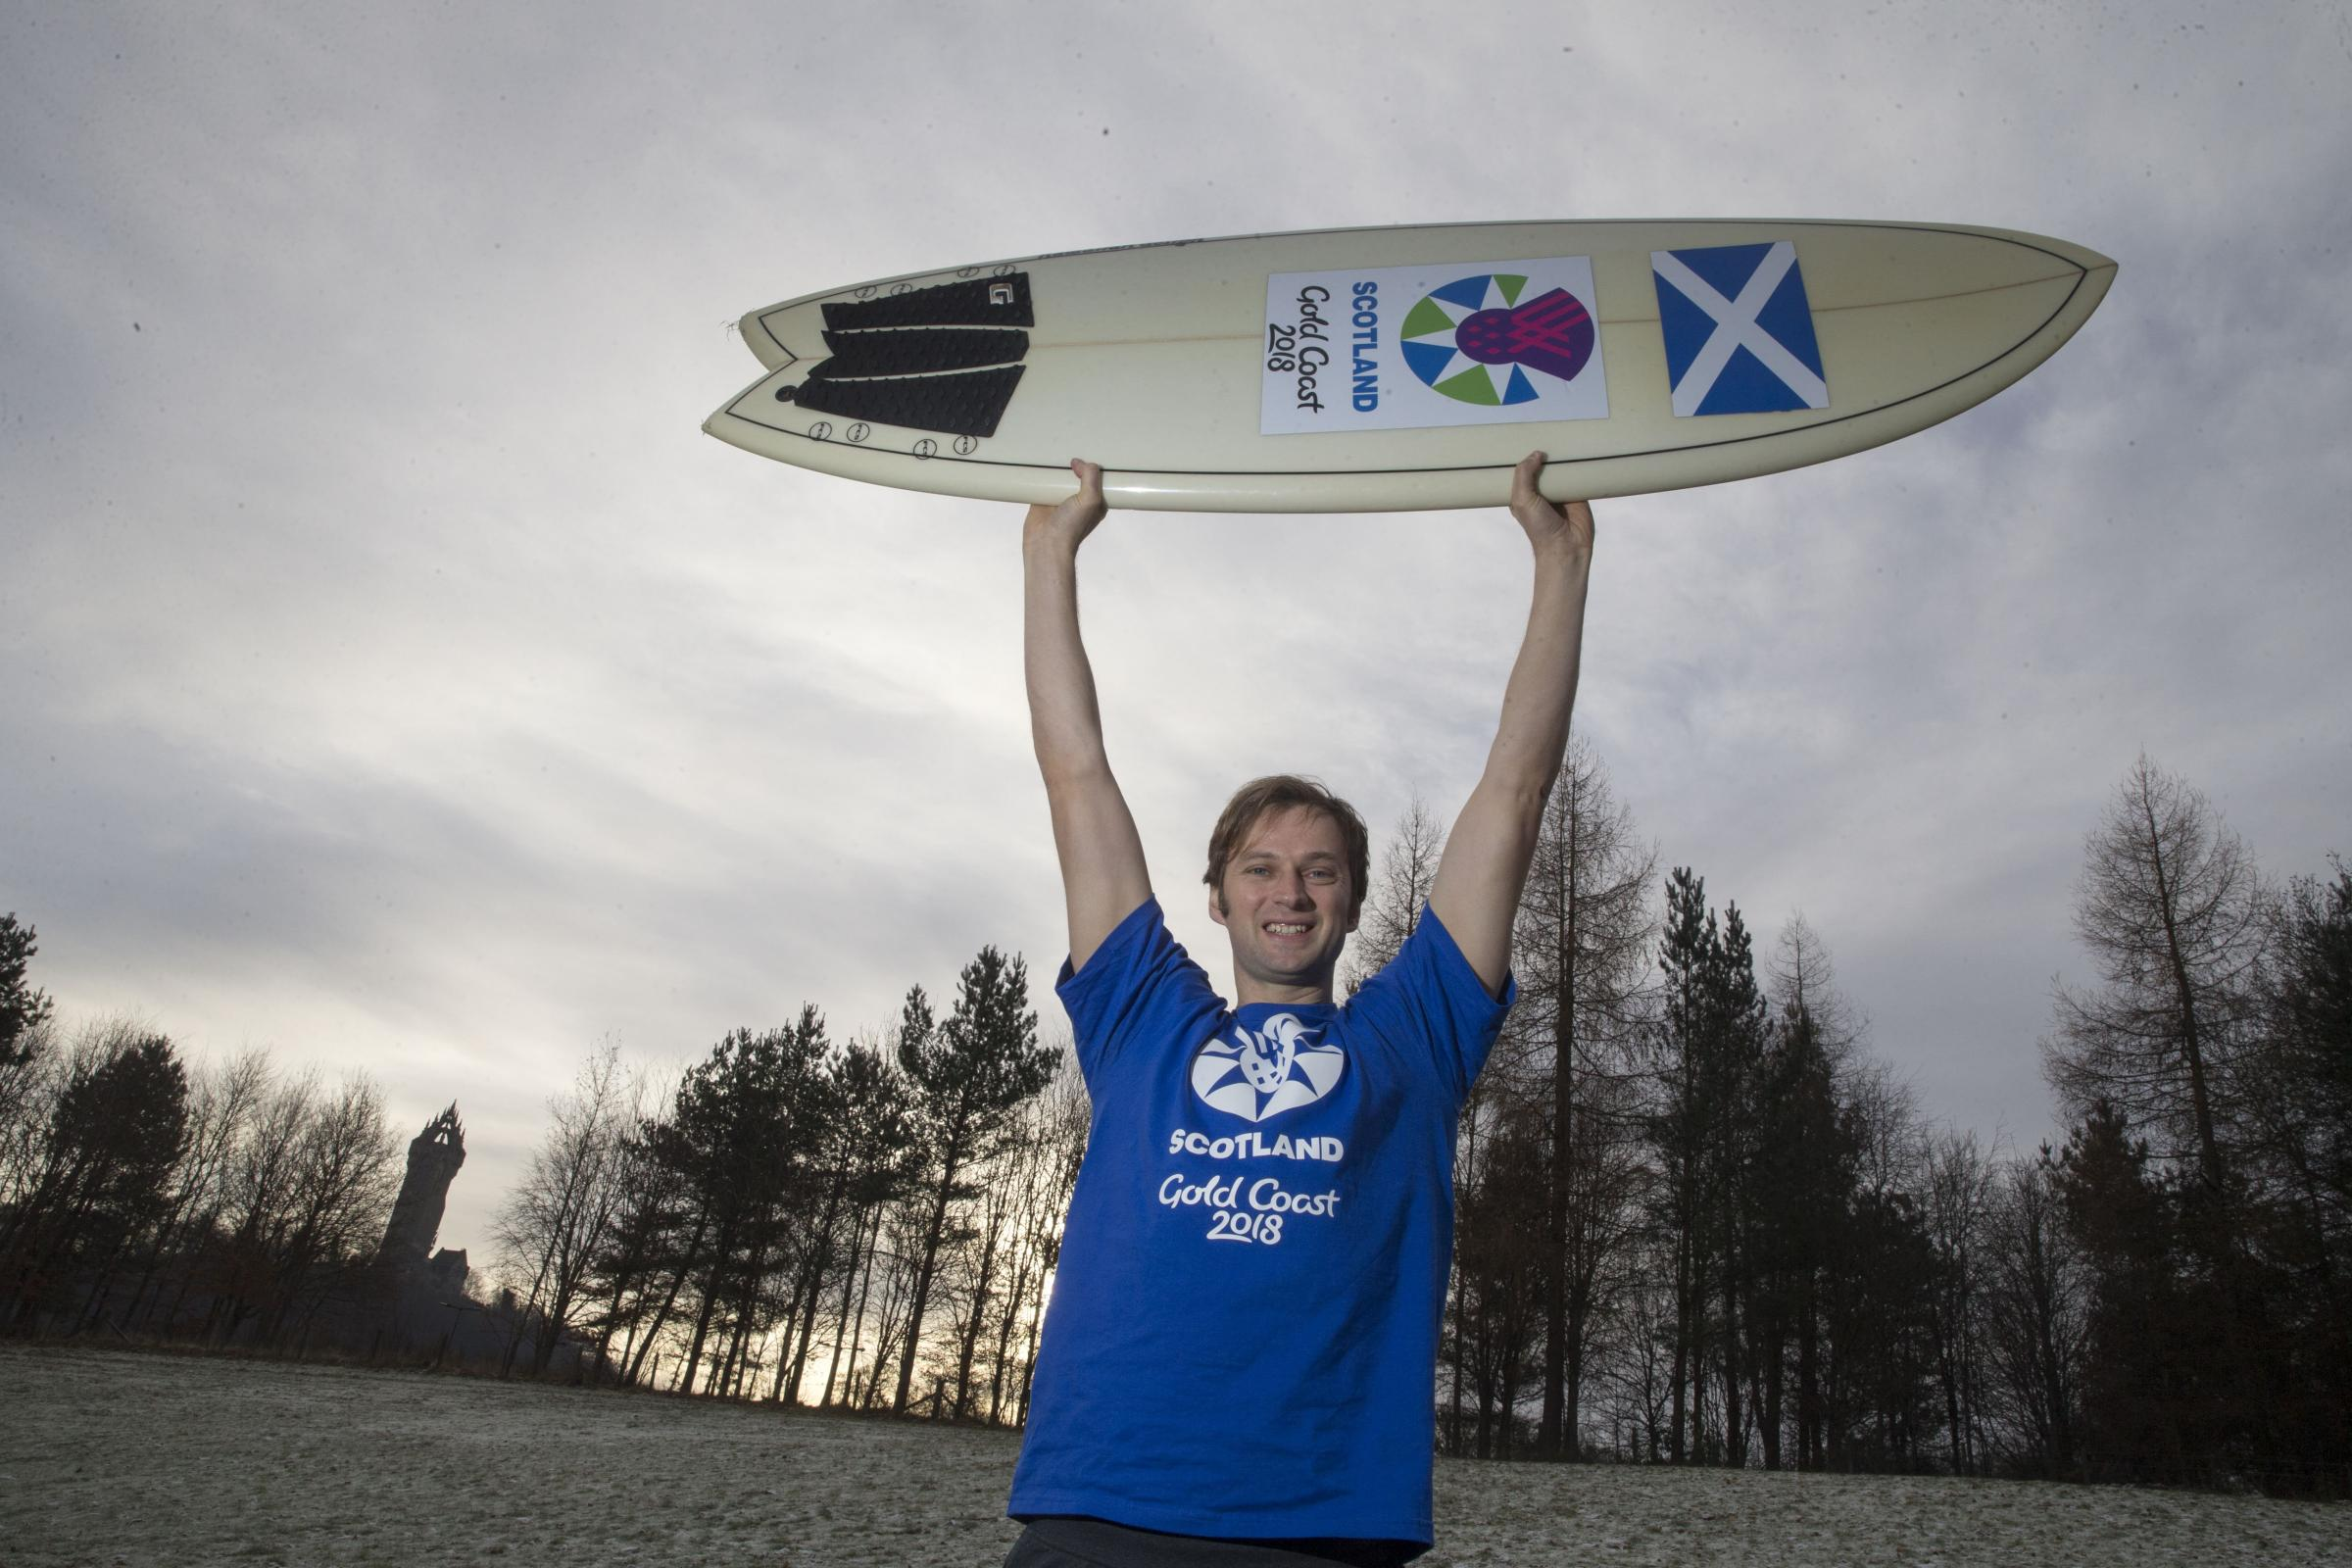 Robin Miezybrodzki is savouring the chance to represent Scotland at the Gold Coast. Picture: Jeff Holmes